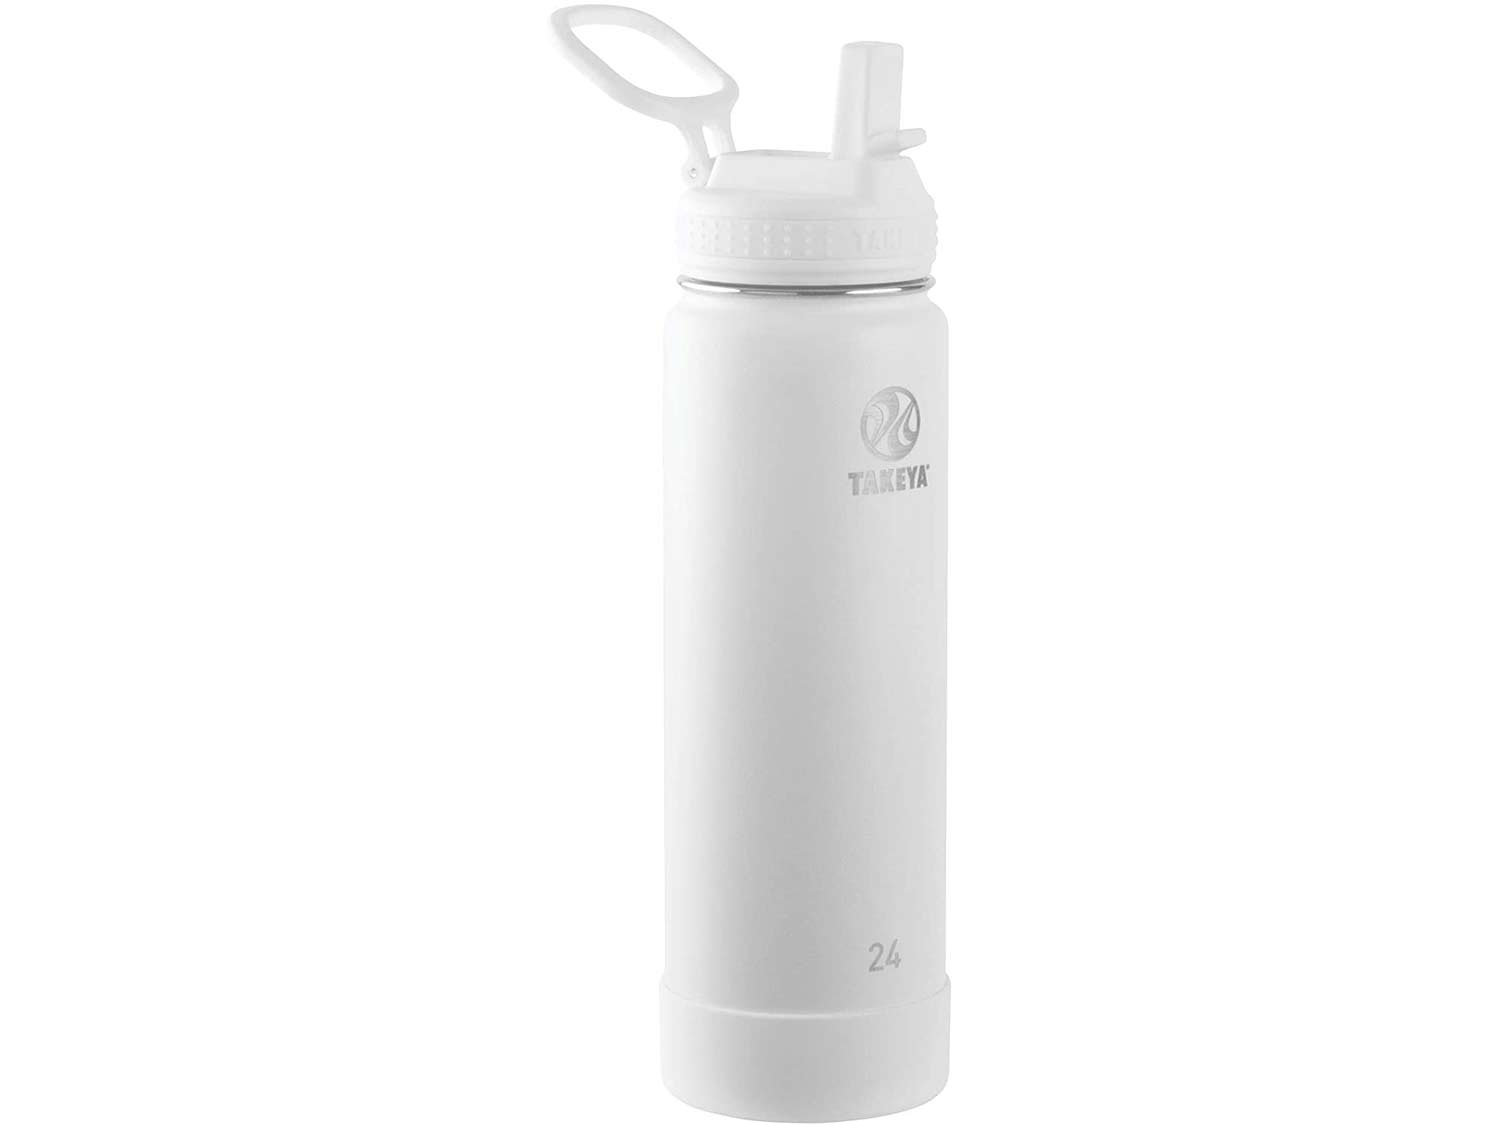 Takeya Actives Insulated Stainless Steel Water Bottle with Straw Lid